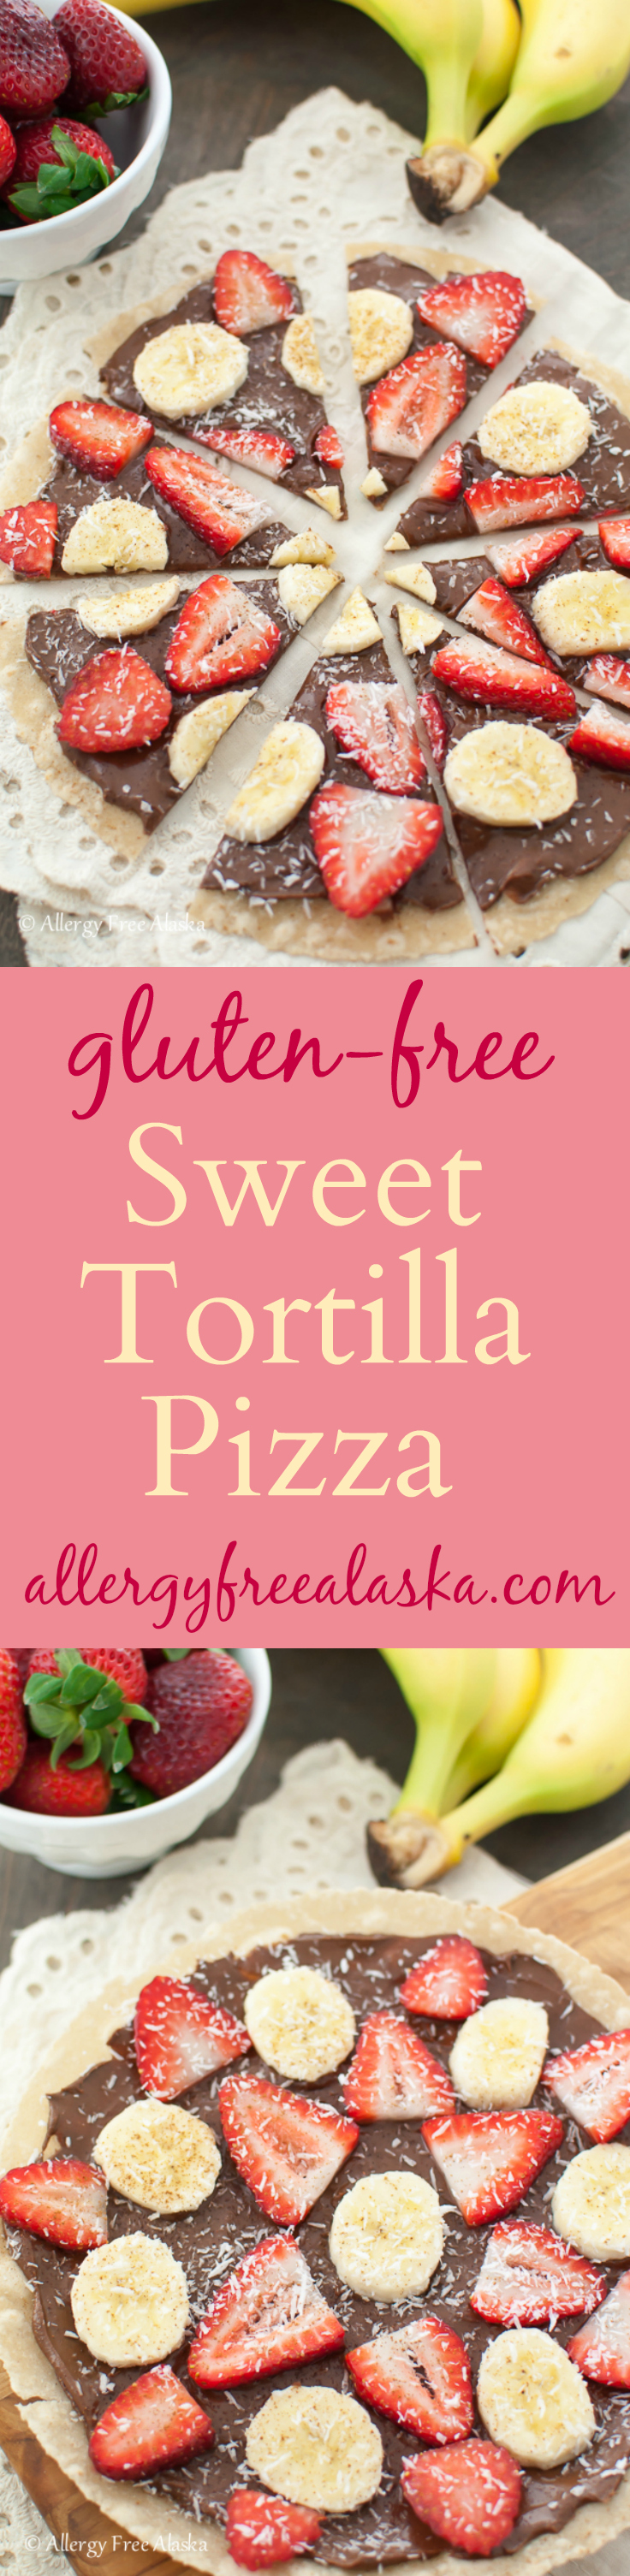 Gluten Free Sweet Tortilla Pizza from Allergy Free Alaska